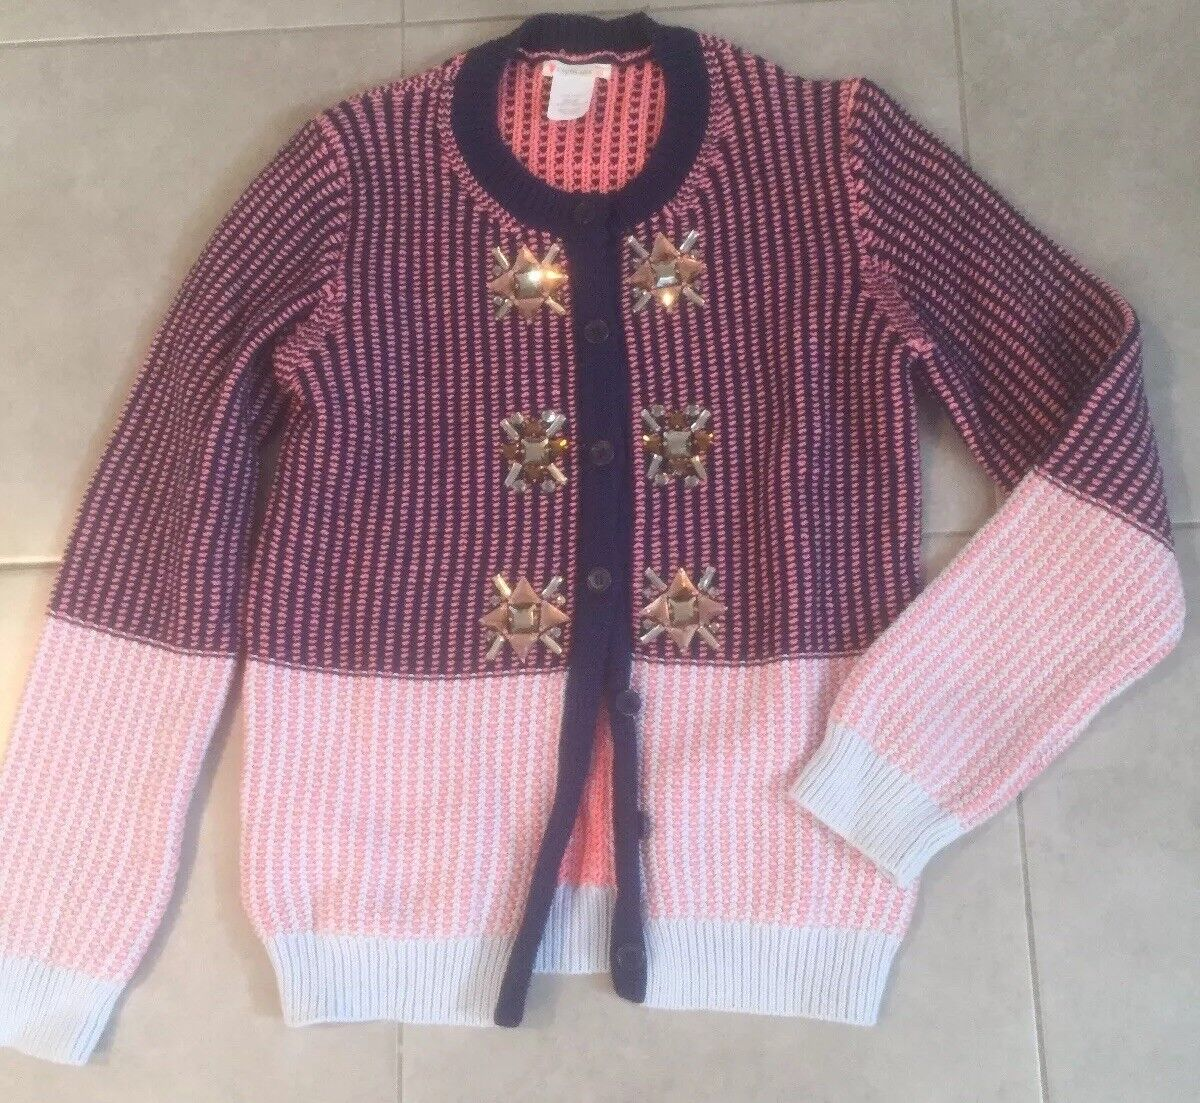 CREWCUTS Button Down Pink and Navy Studded Women's Sweater Size 16 Long sleeves